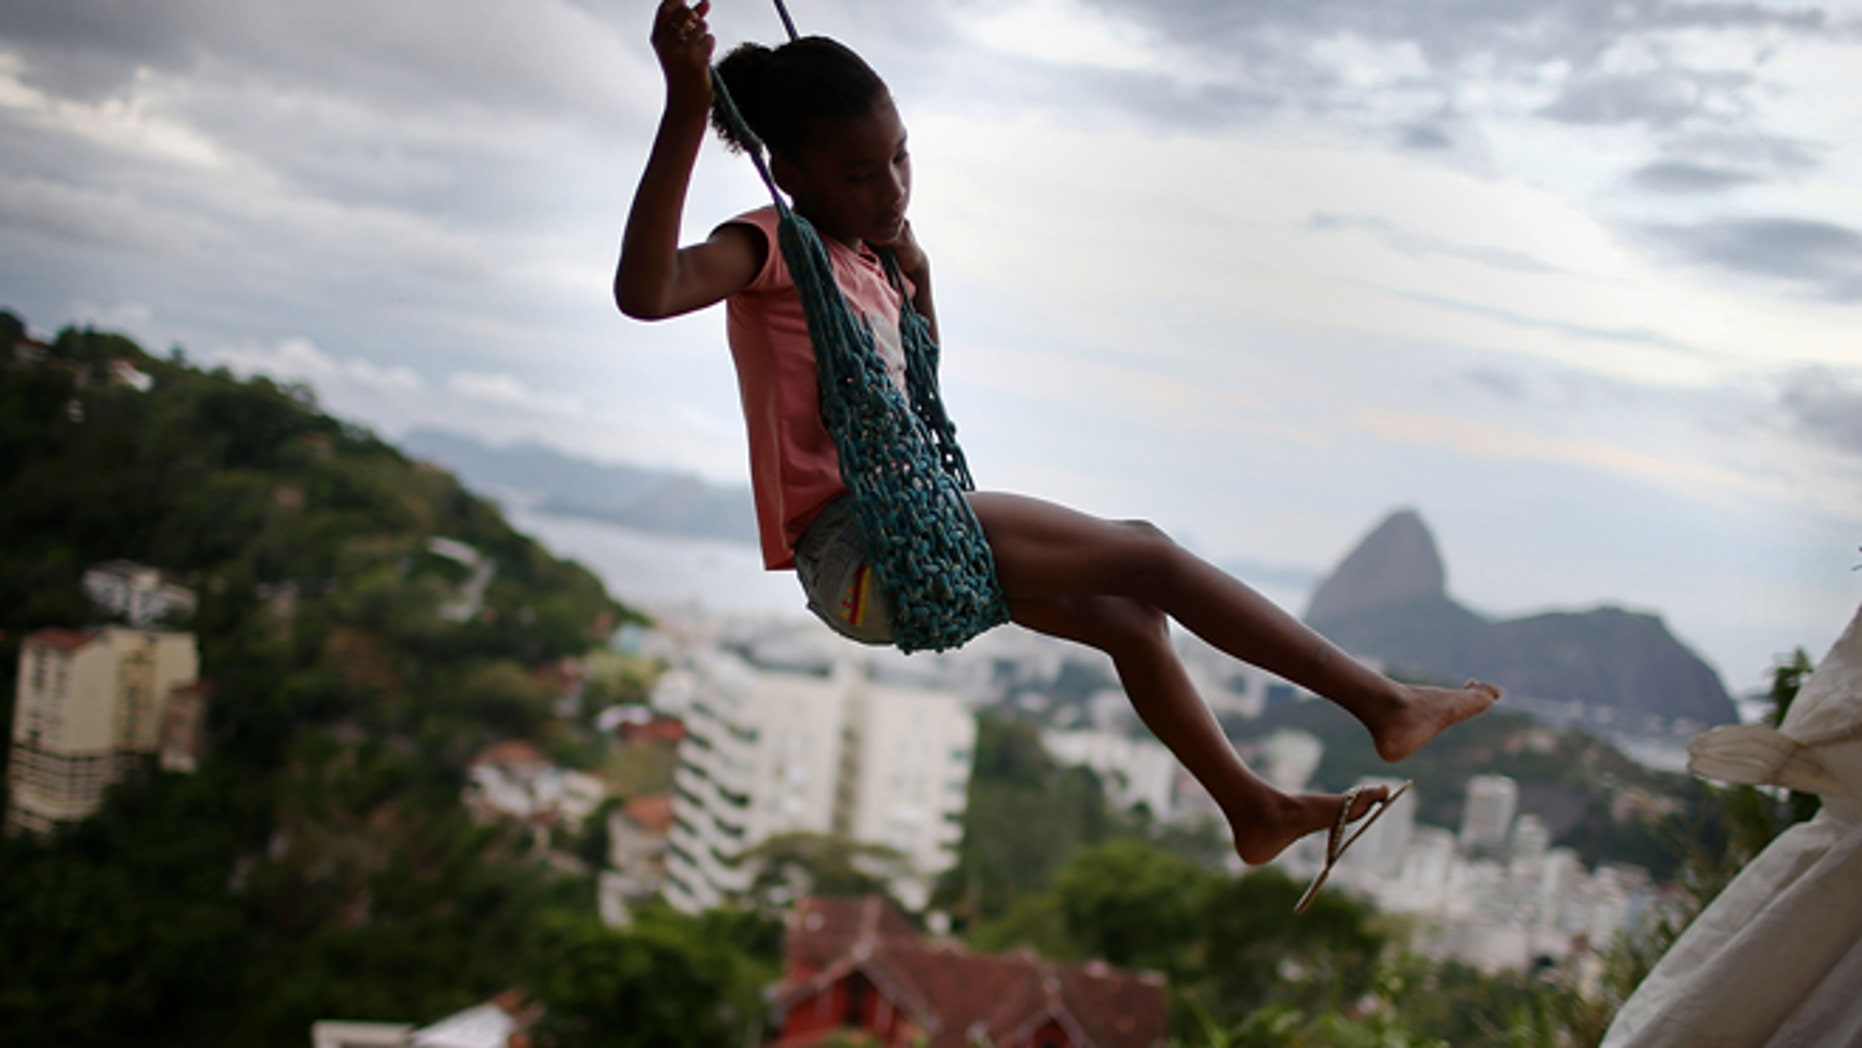 RIO DE JANEIRO, BRAZIL - MARCH 22:  A child swings on a swing in the Prazeres pacified 'favela' community on March 22, 2014 in Rio de Janeiro, Brazil. The 'favela' was previously controlled by drug traffickers and is now occupied by the city's Police Pacification Unit (UPP). A number of UPP's were attacked by drug gang members on March 20 and some pacified favelas will soon receive federal forces as reinforcements. The UPP are patrolling some of Rio's favelas amid the city's efforts to improve security ahead of the 2014 FIFA World Cup and 2016 Olympic Games.  (Photo by Mario Tama/Getty Images)